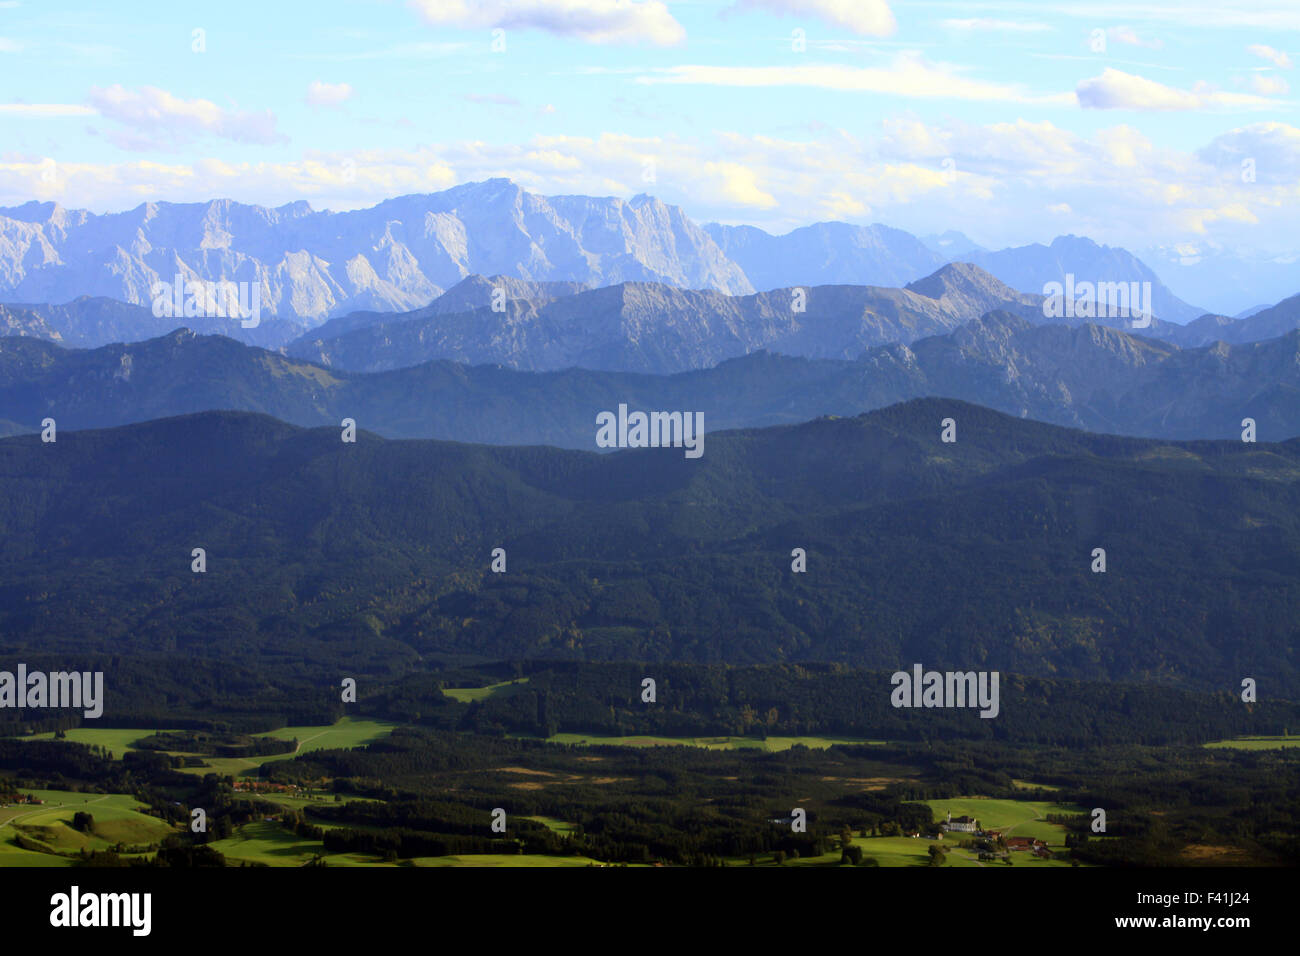 Allgäu and the Mountins of the Alps Stock Photo